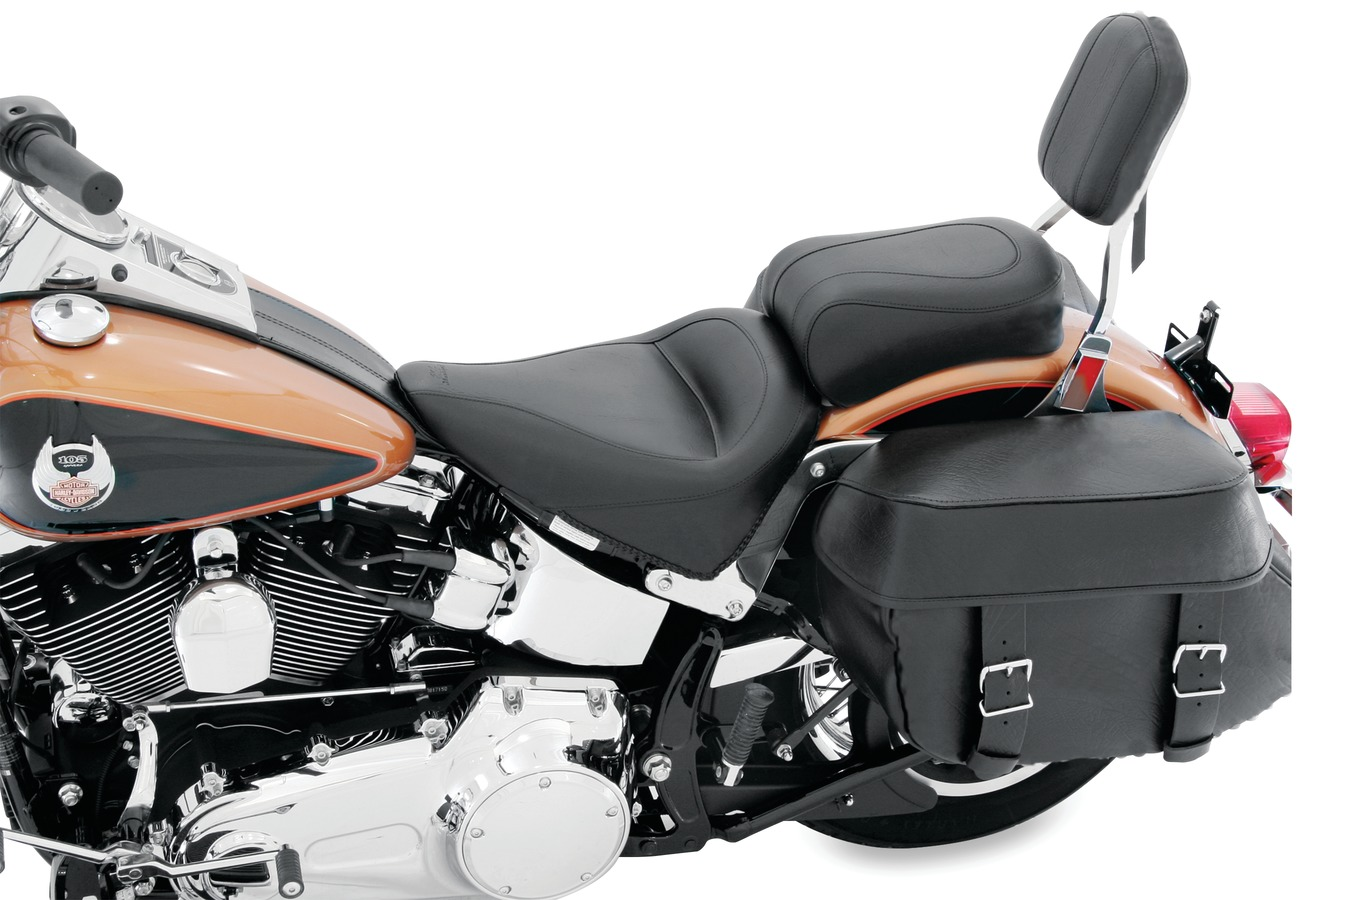 Standard Touring One-Piece Seat for Harley-Davidson Softail Standard Rear Tire 2000-